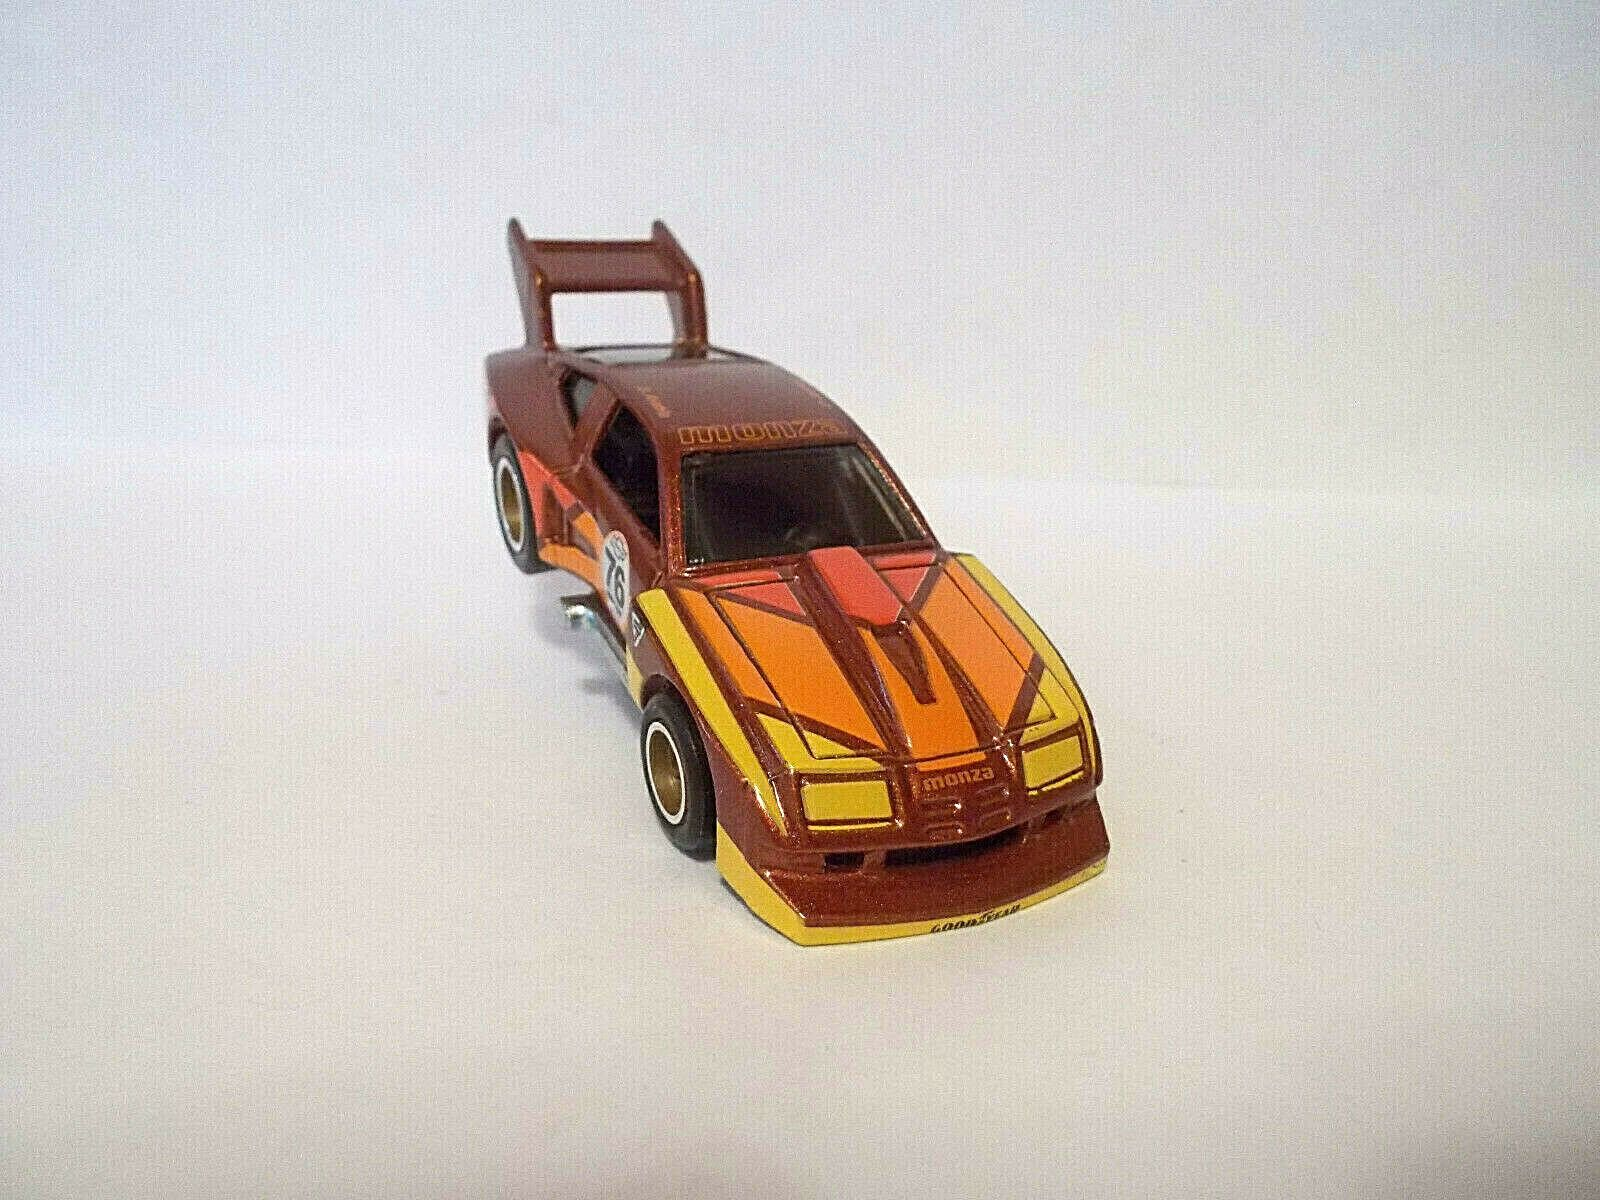 Hot Wheels 76 1976 Chevy Monza 2019 Silhouettes Car Culture 1 64